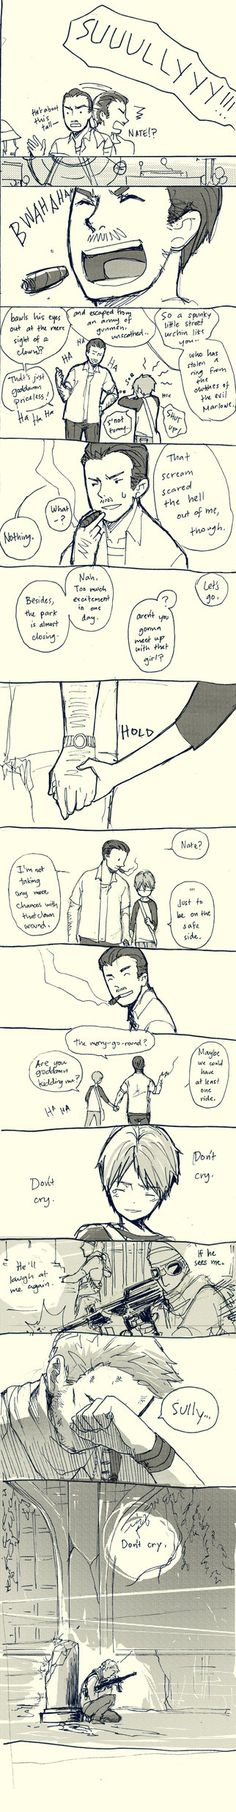 A child for once III by demitasse-lover on DeviantArt. How about no. :'o